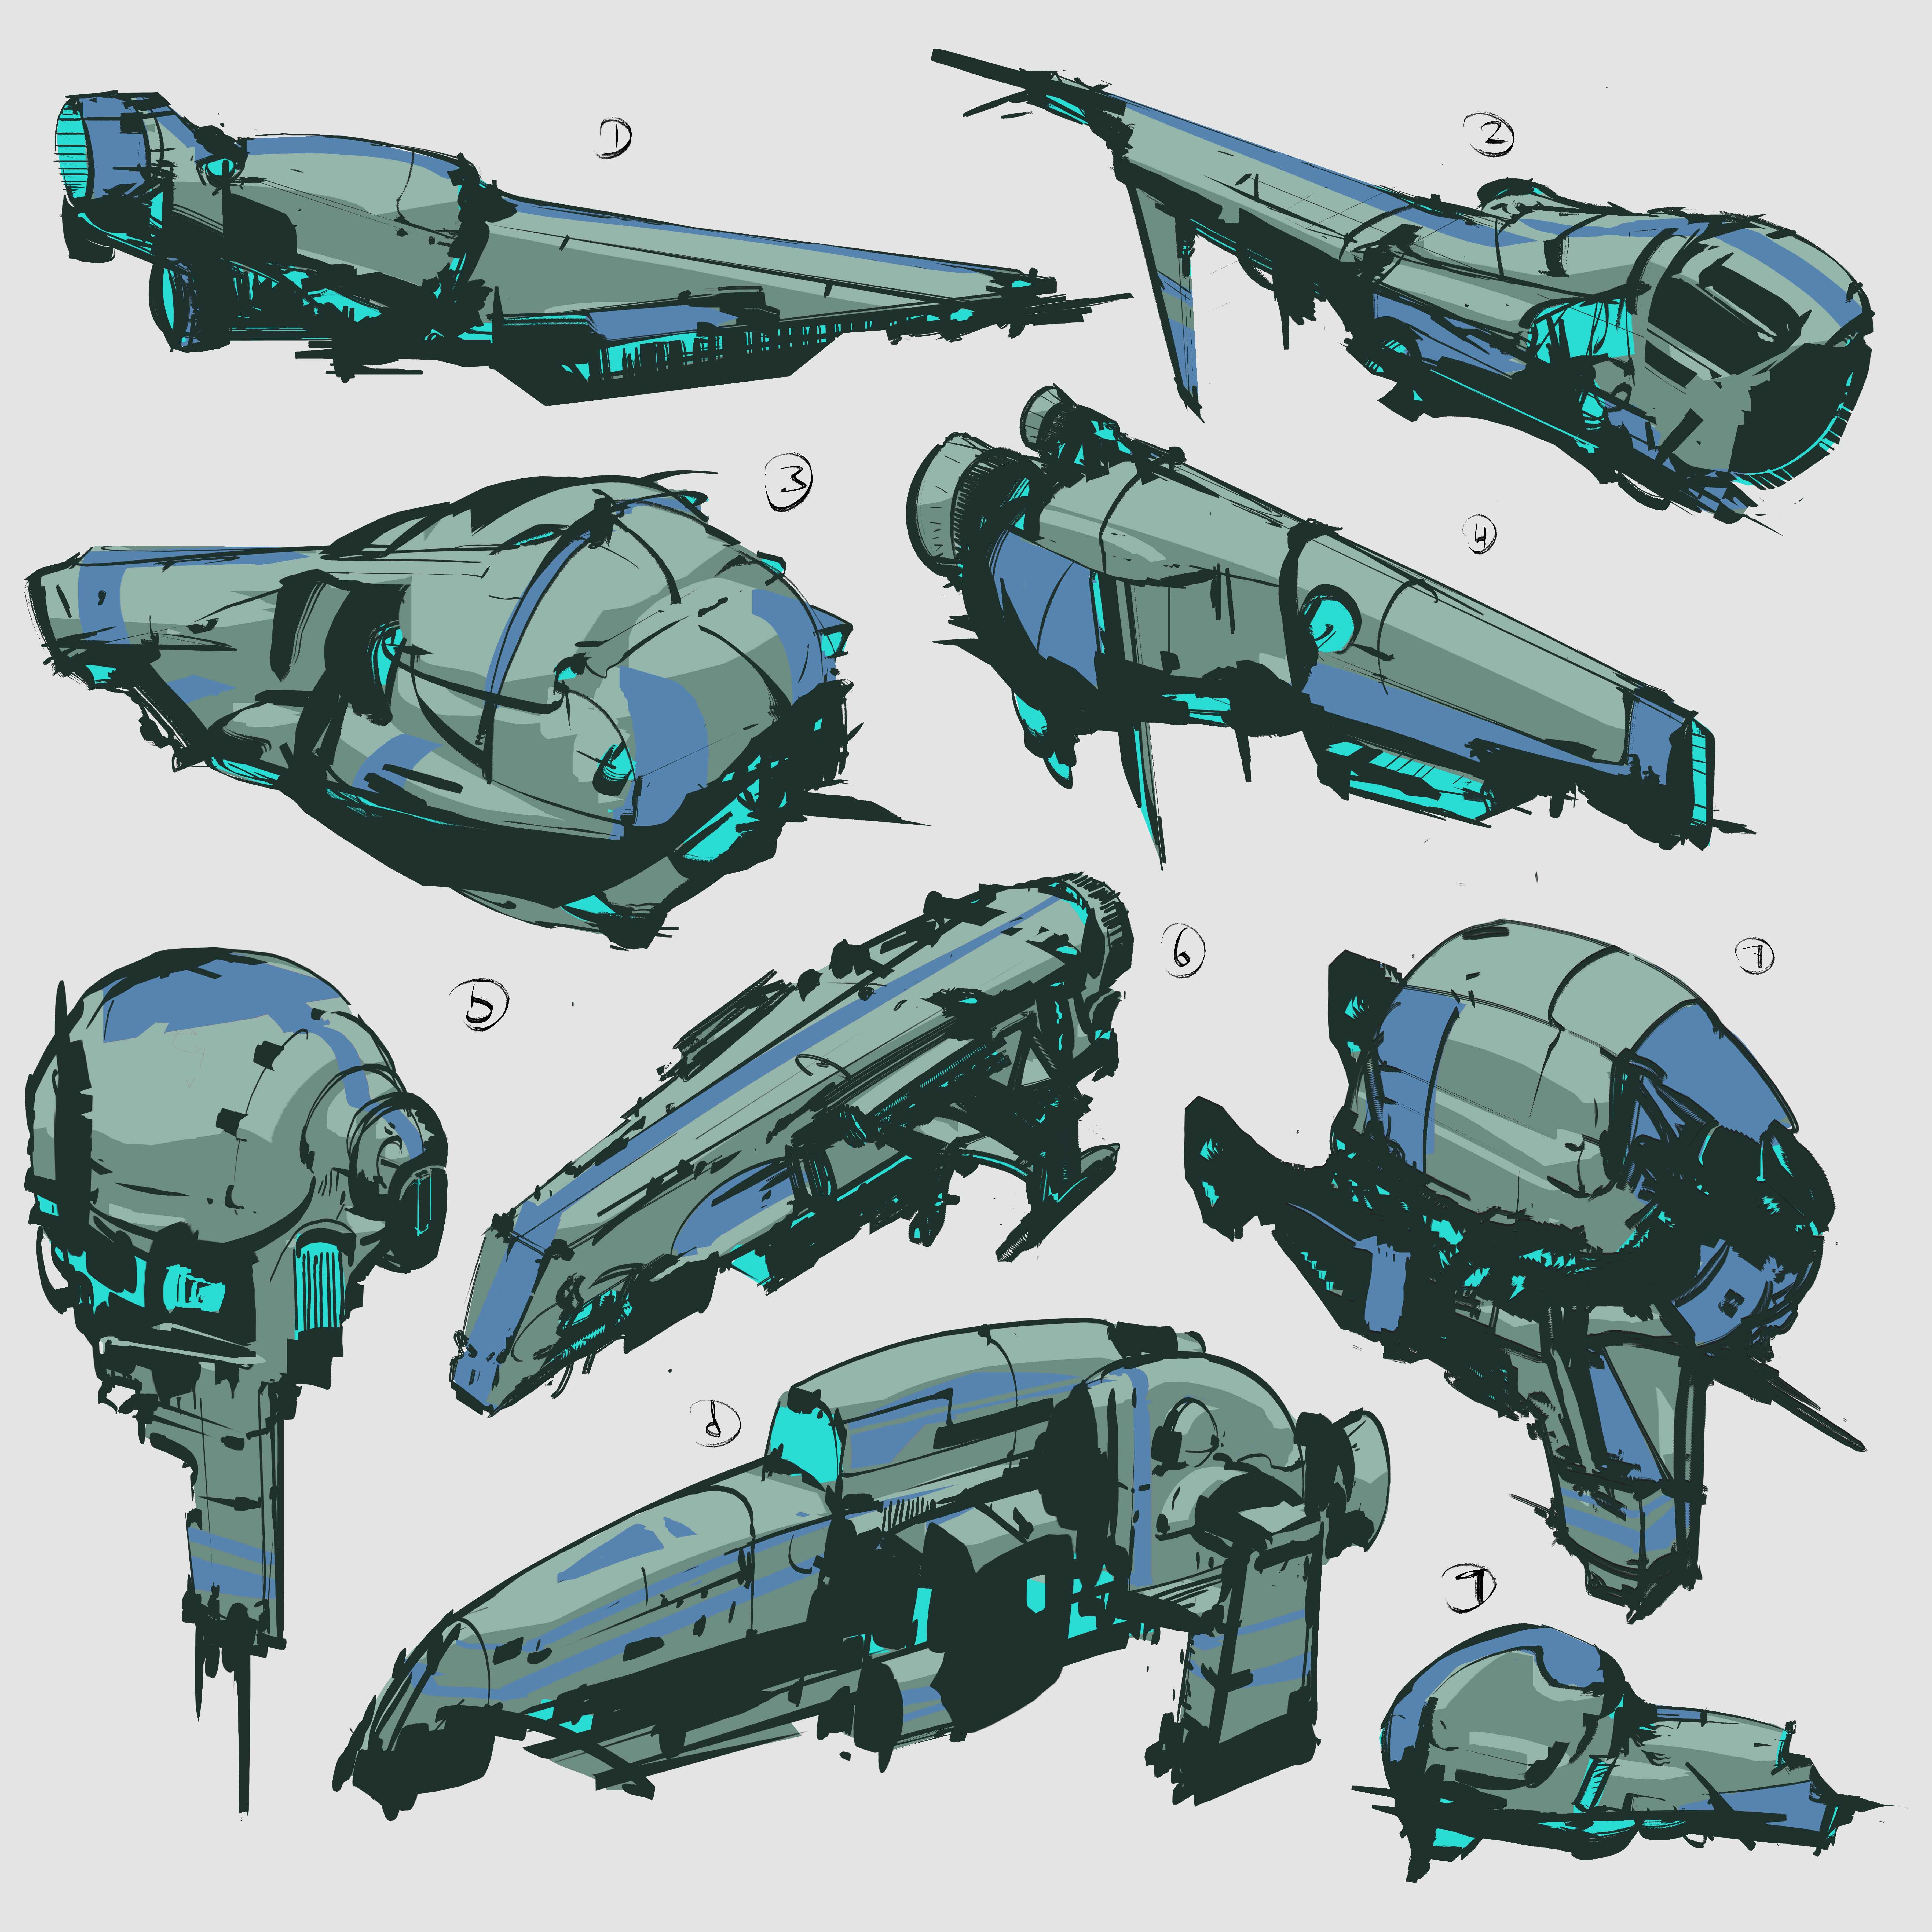 #space #spaceships #stylized #conceptart #conceptdesign #design #gameart #gameconceptart #inkdrawing #scifi #scififantasy #shapes #sketch #sketchdrawing #thumbnails #thumbnailsketches